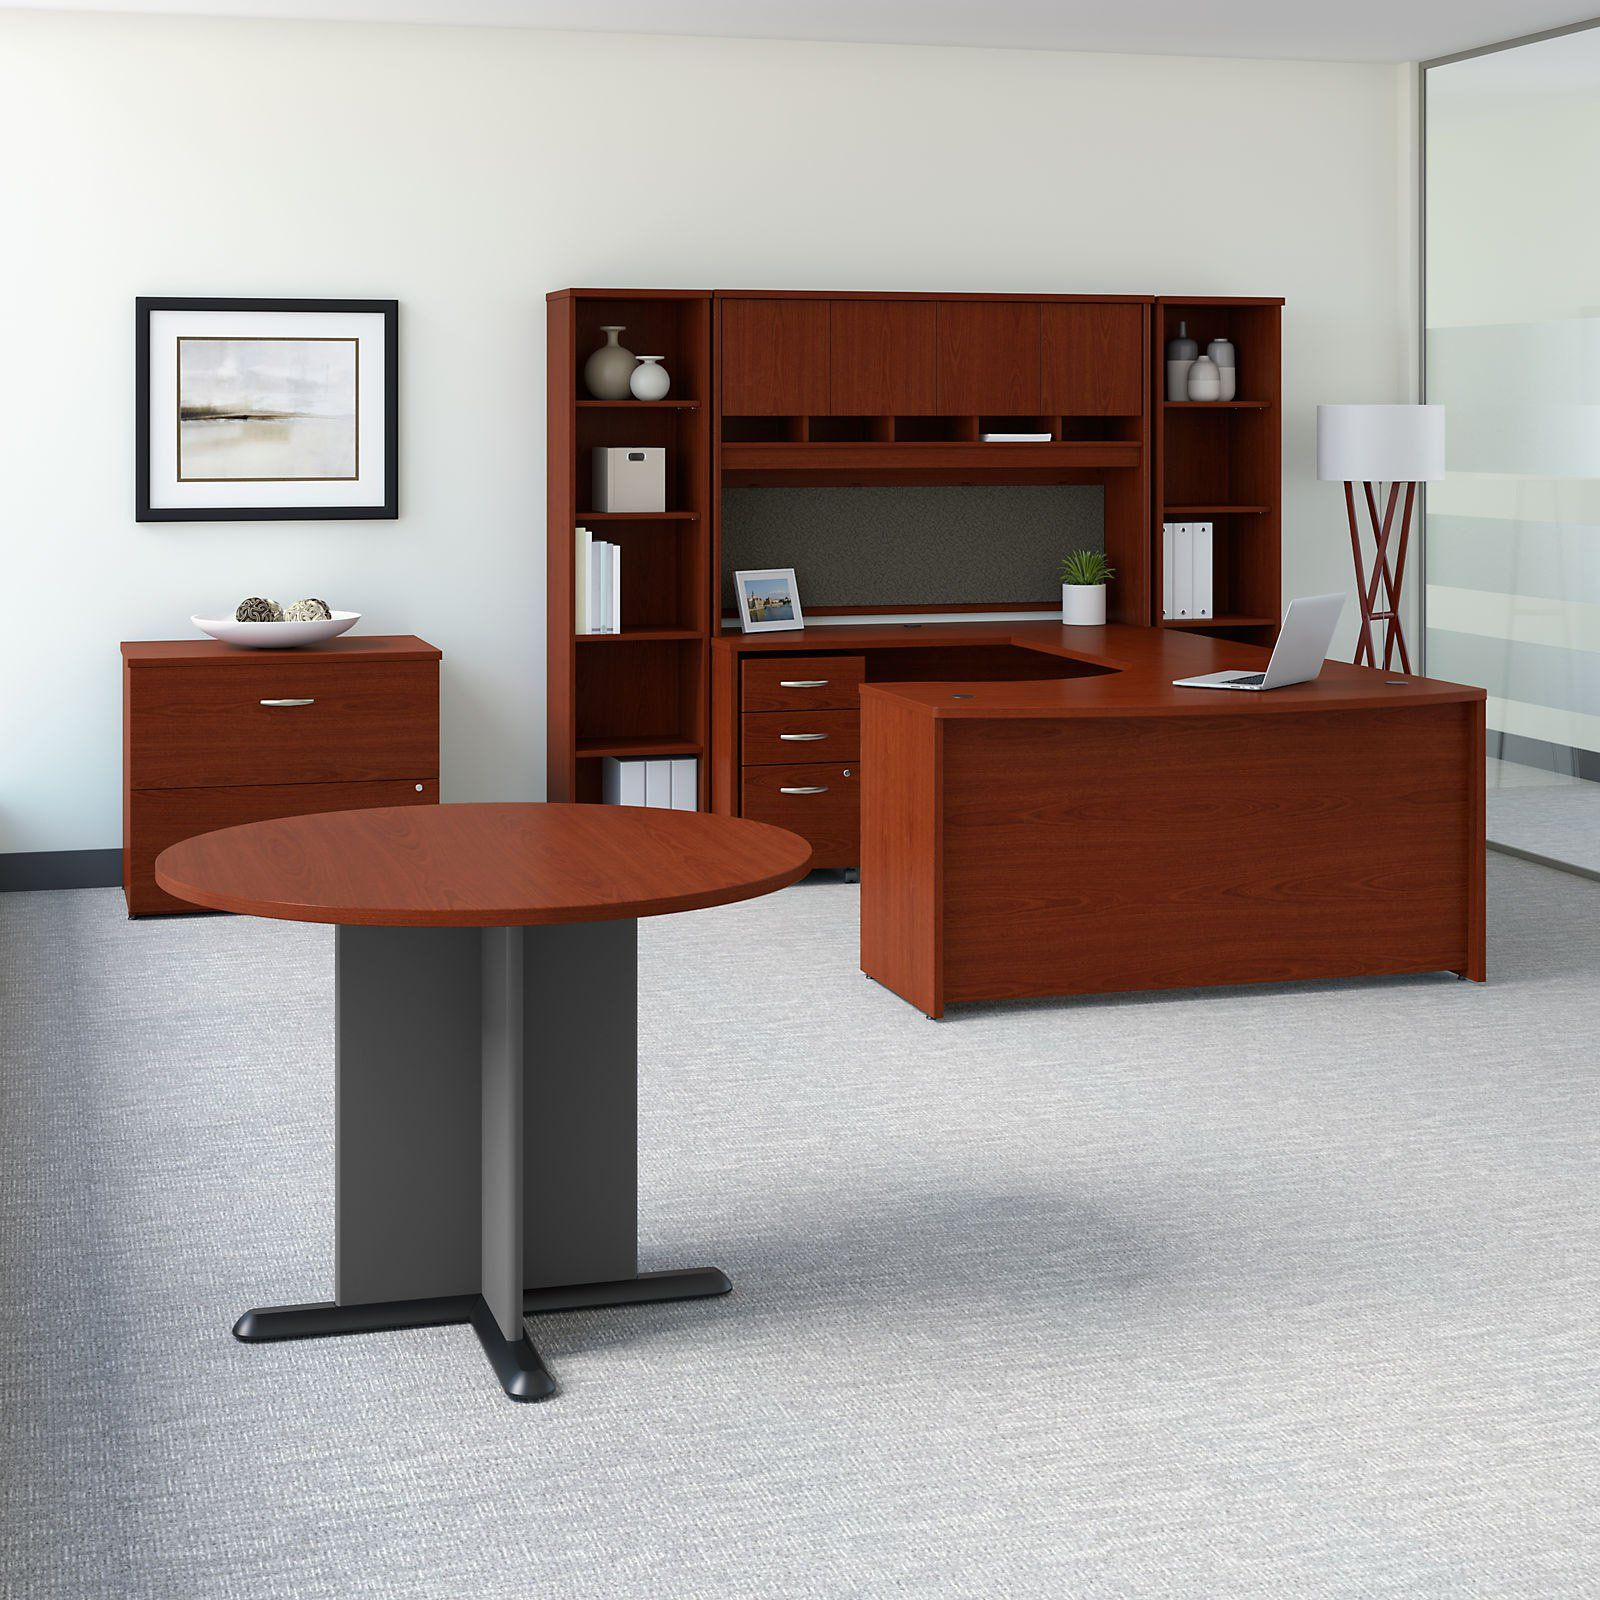 Bush Business Furniture Series C 60 In Right Handed Bow Front U Shaped Desk With Storage And Conference Table With Images Bush Business Furniture Furniture Conference Table